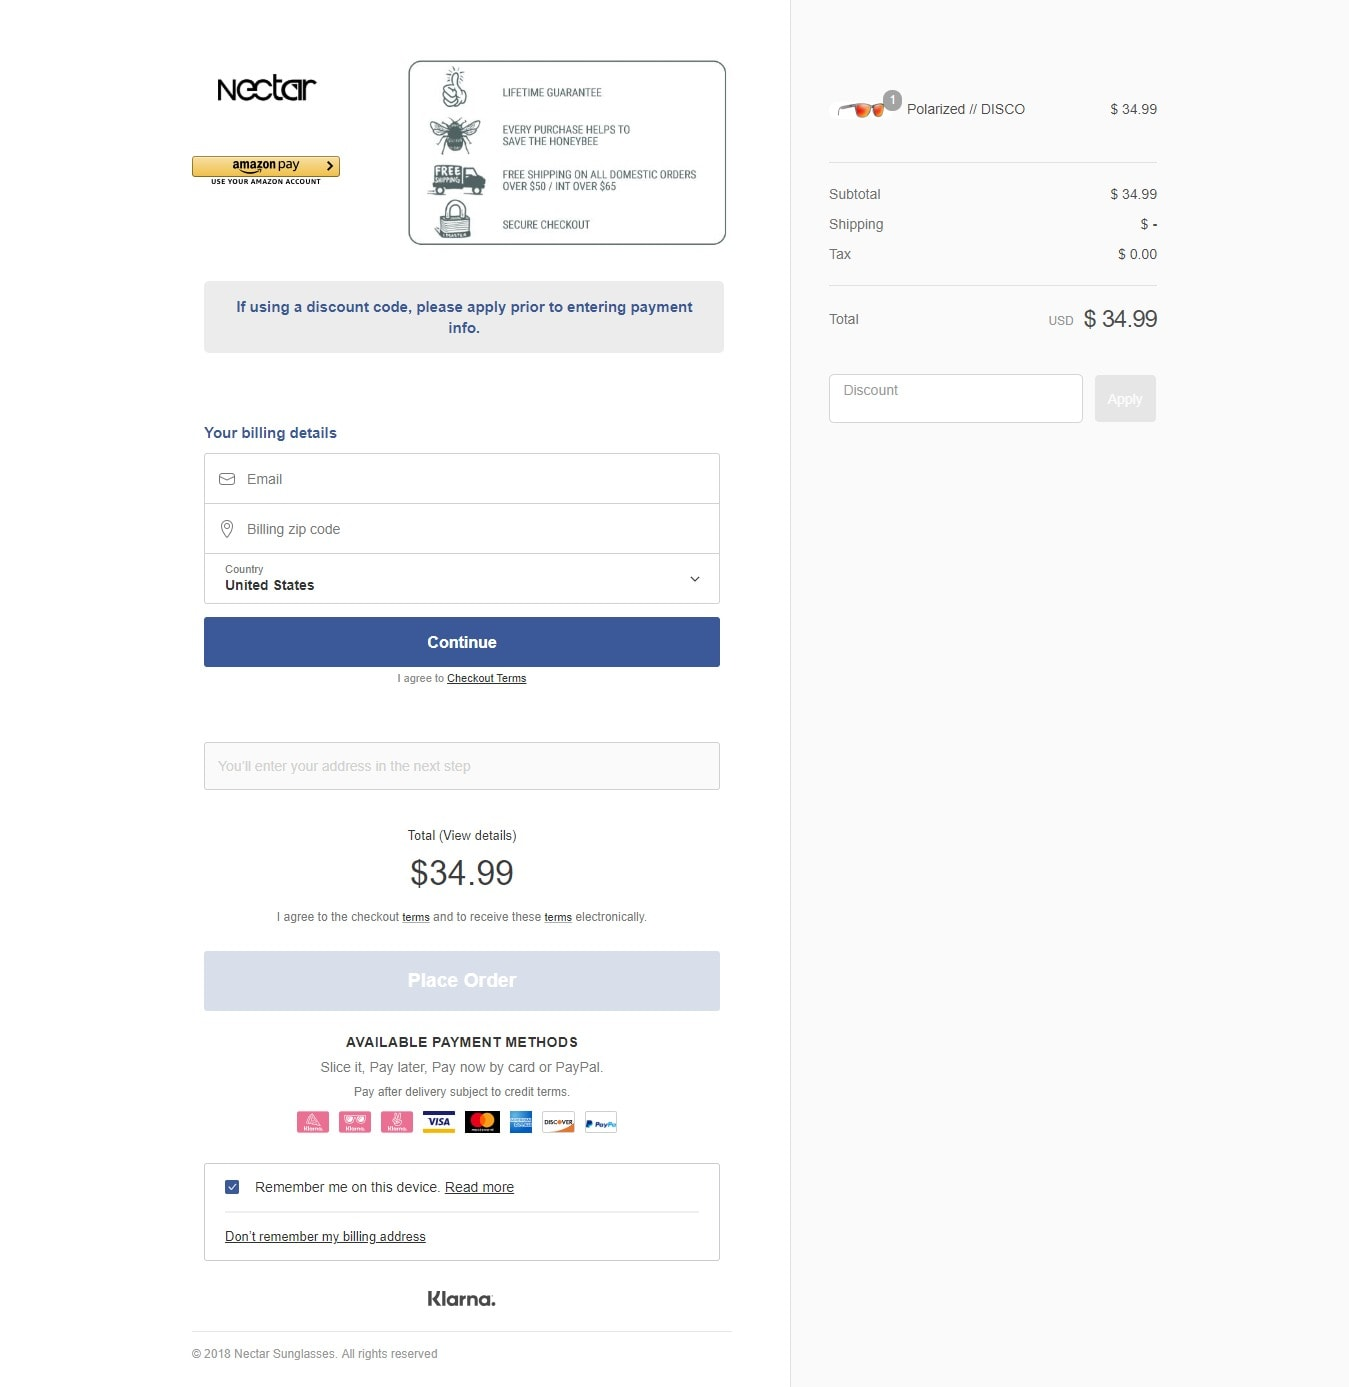 Step By Step Instructions To Utilize Nectar Sunglasses Coupons & Offers